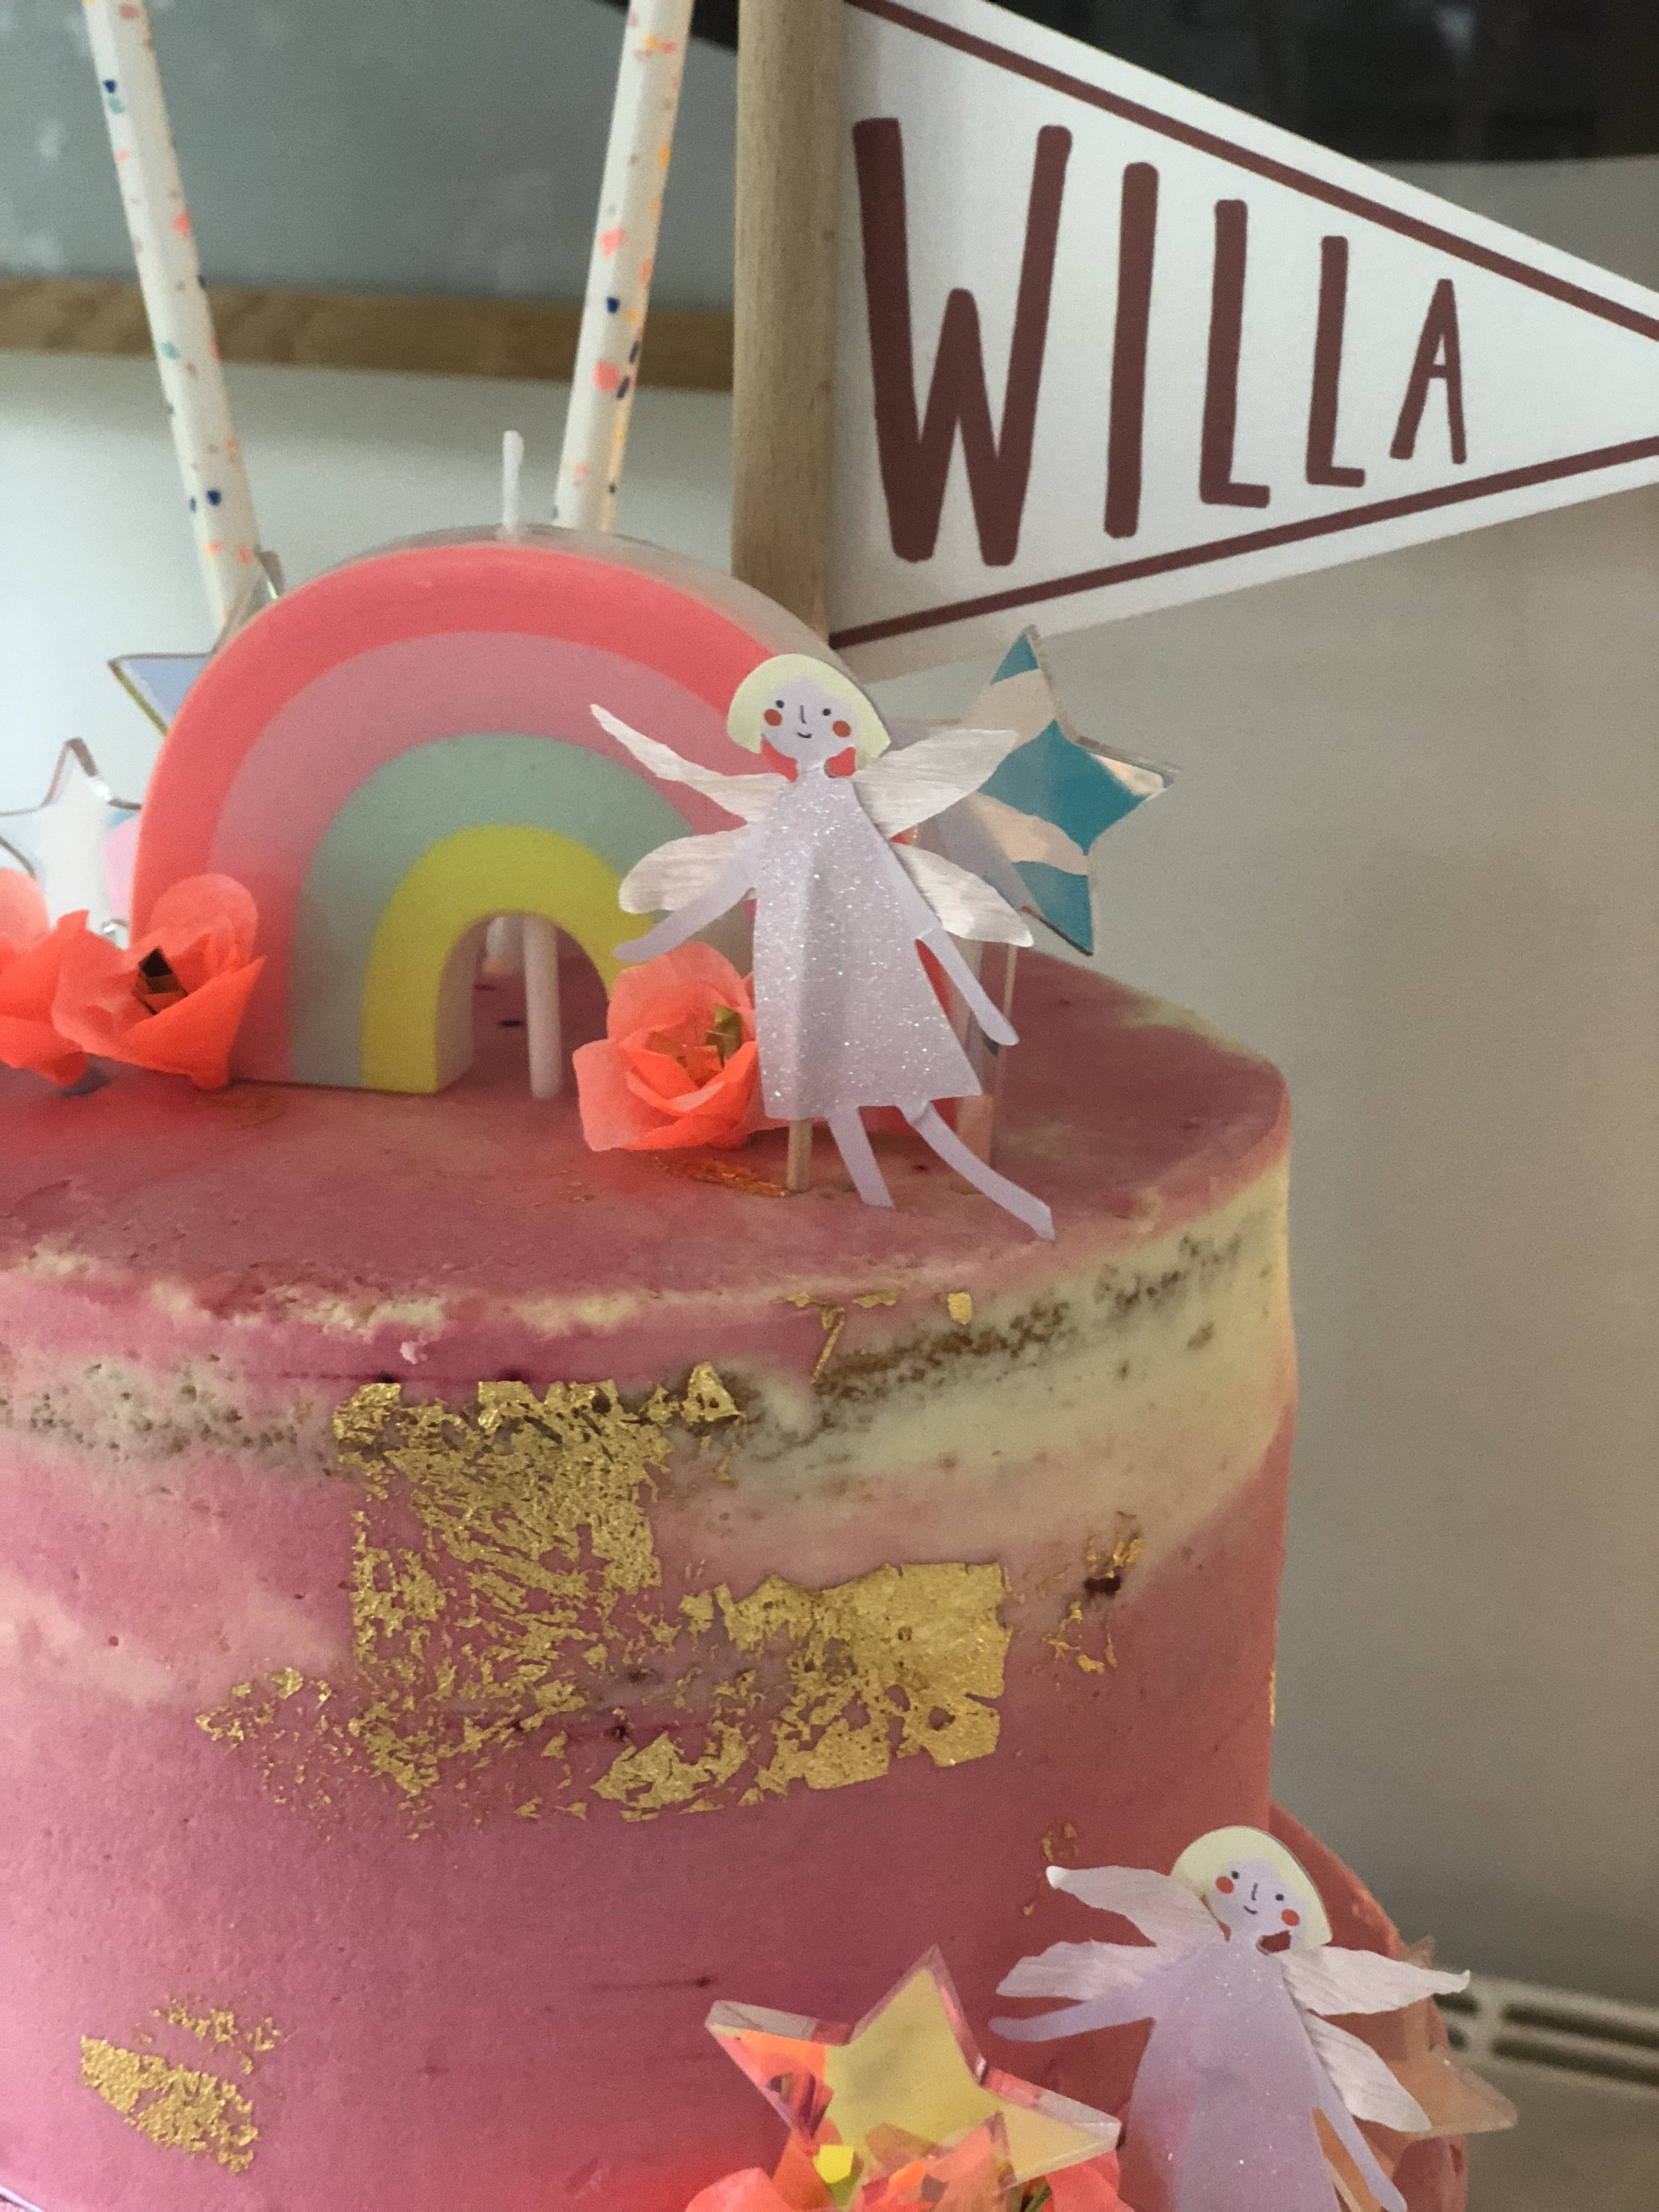 The cake which was candy pink flecked with gold.